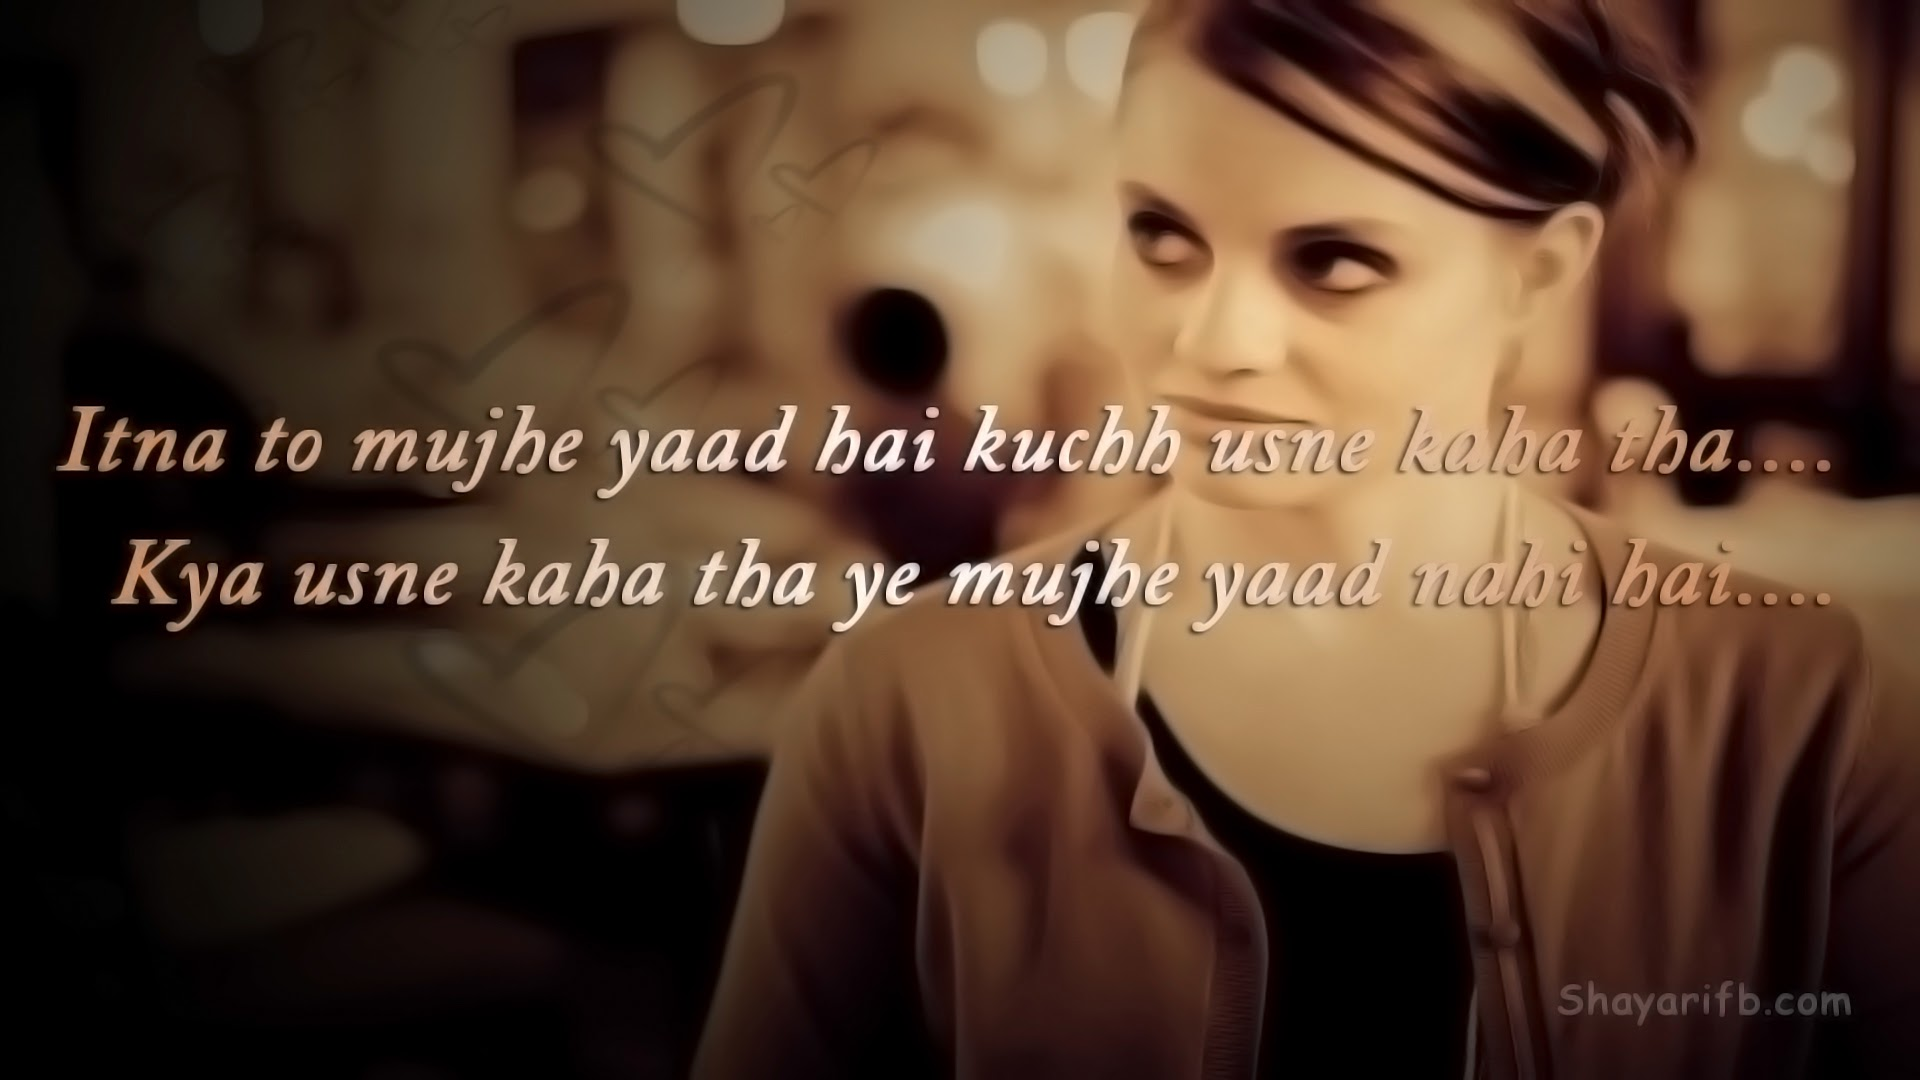 Sad Images Sad wallpapers Sad Shayari : February 2015